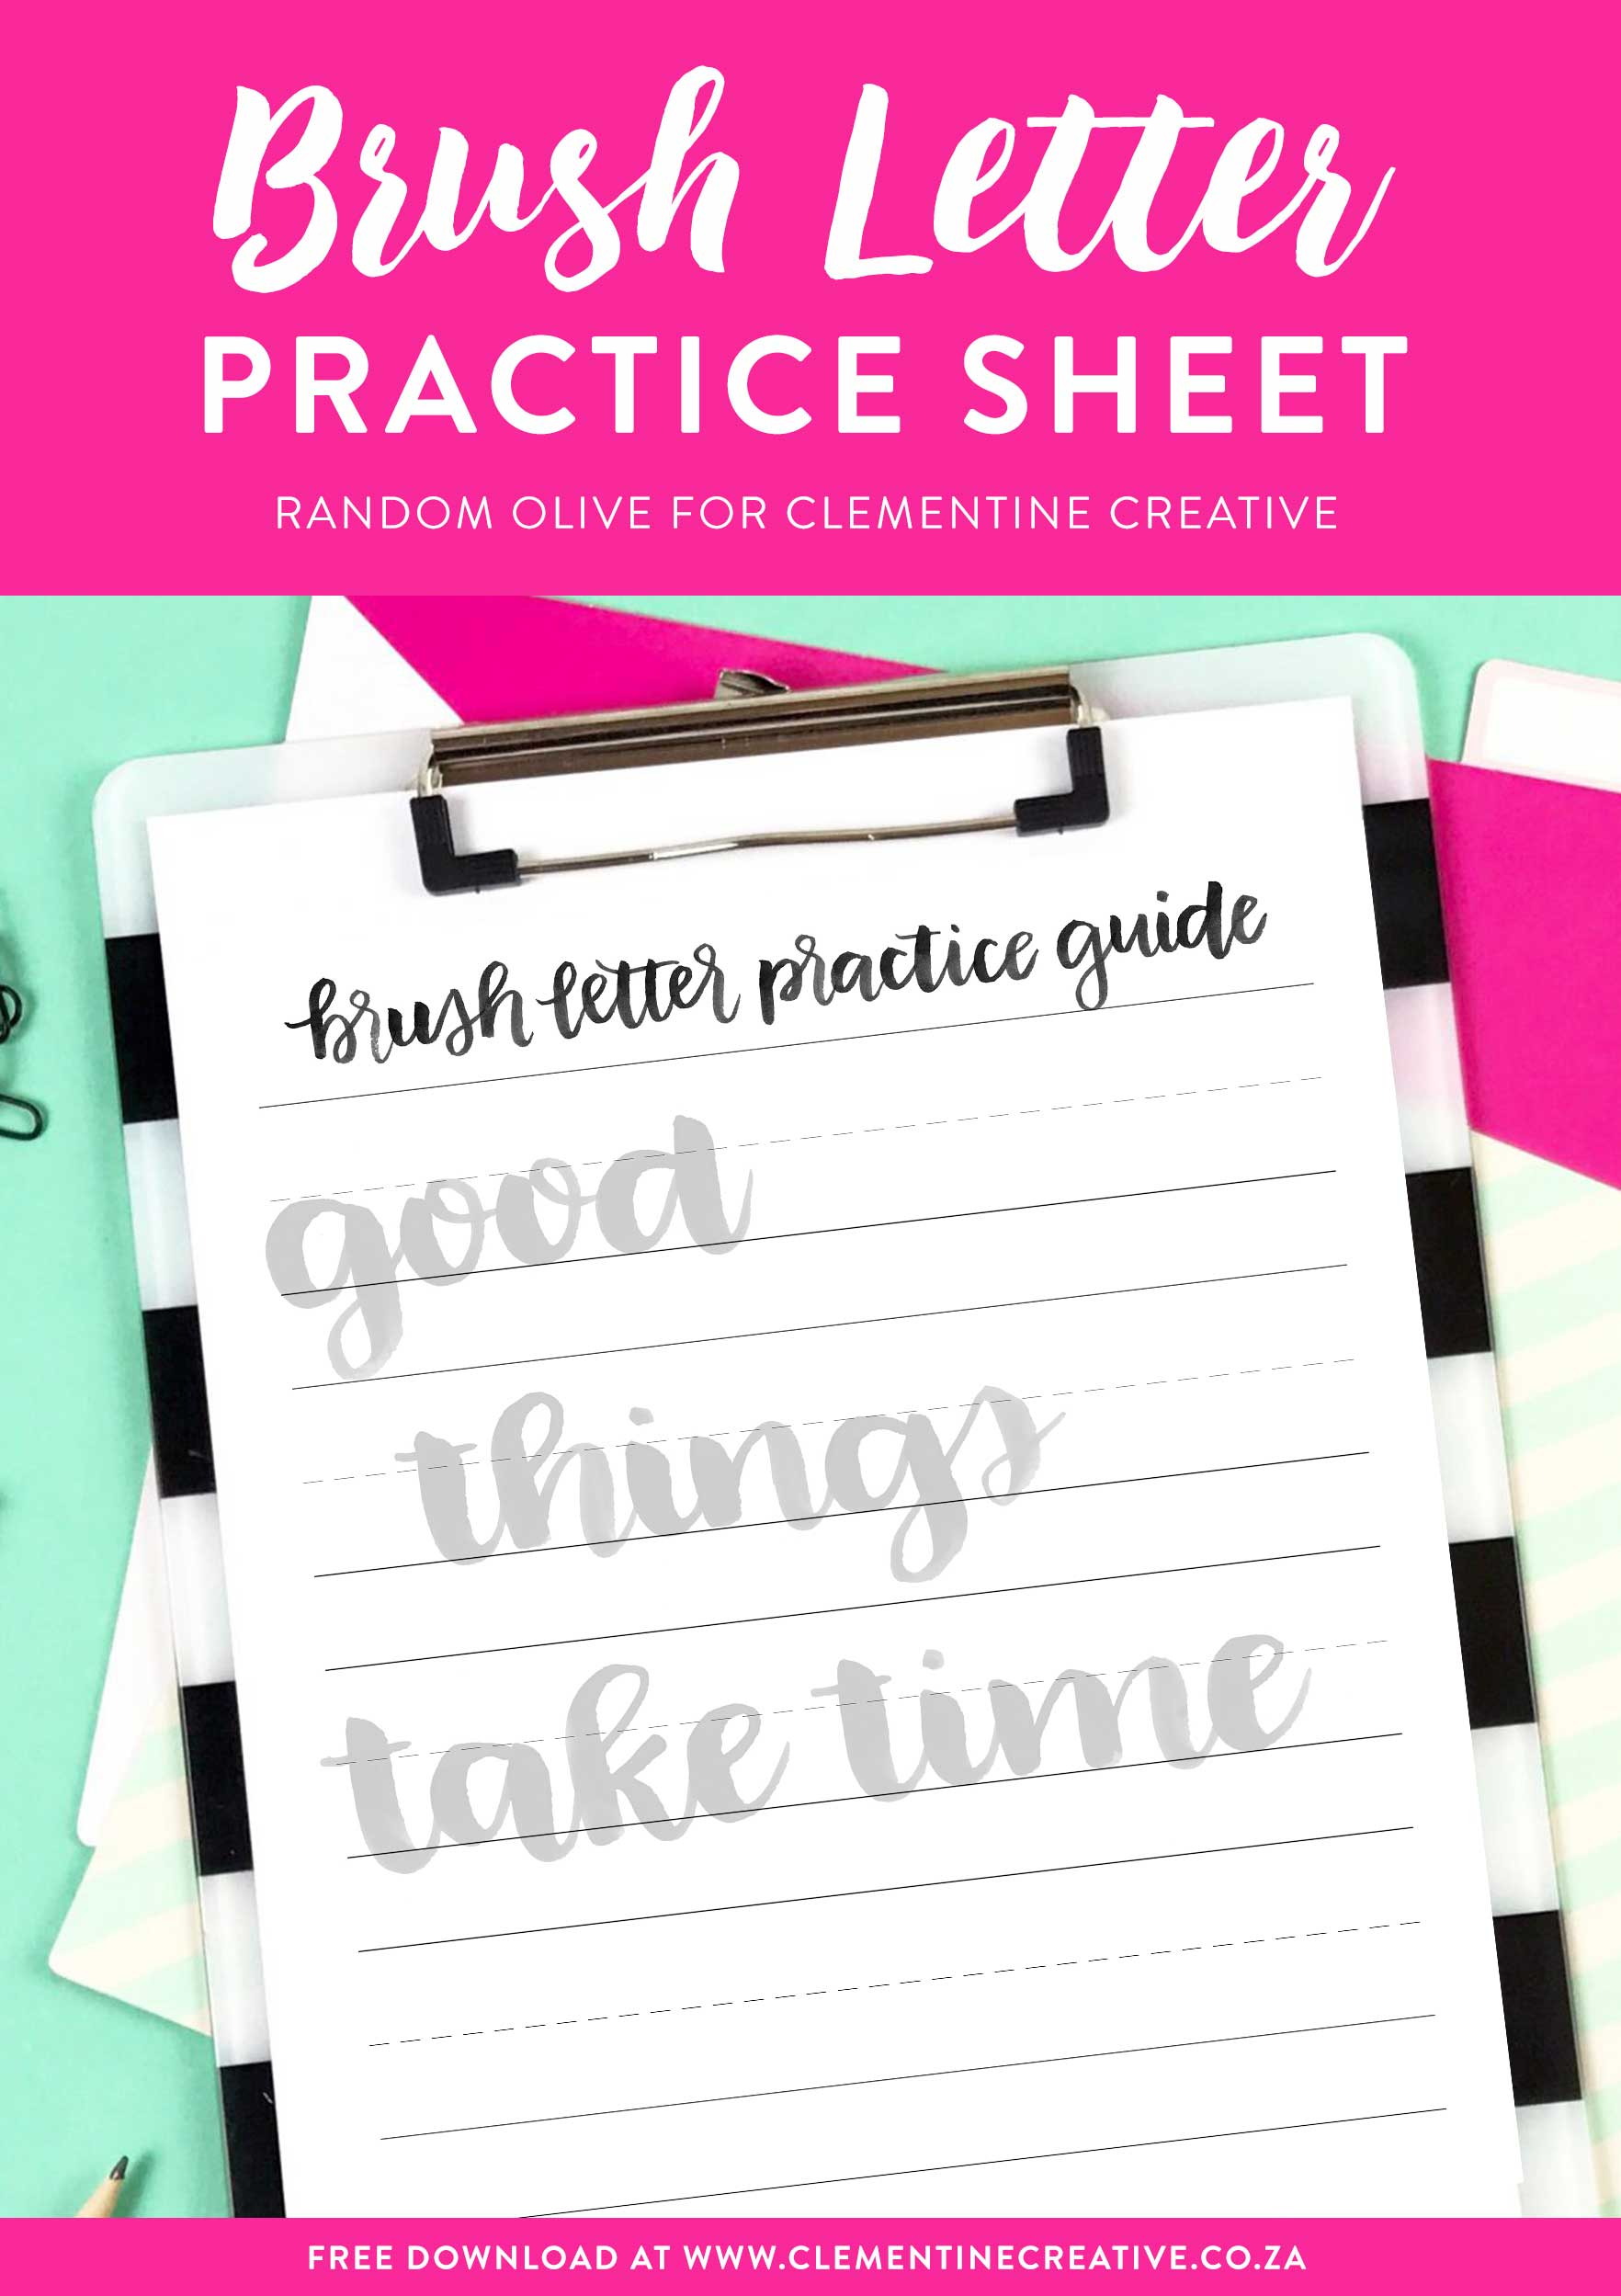 Free brush letter practice sheet by Random Olive. Use your brush pens, paint brushes or Tombow markers to practice your brush lettering! Click here to download this free sheet.